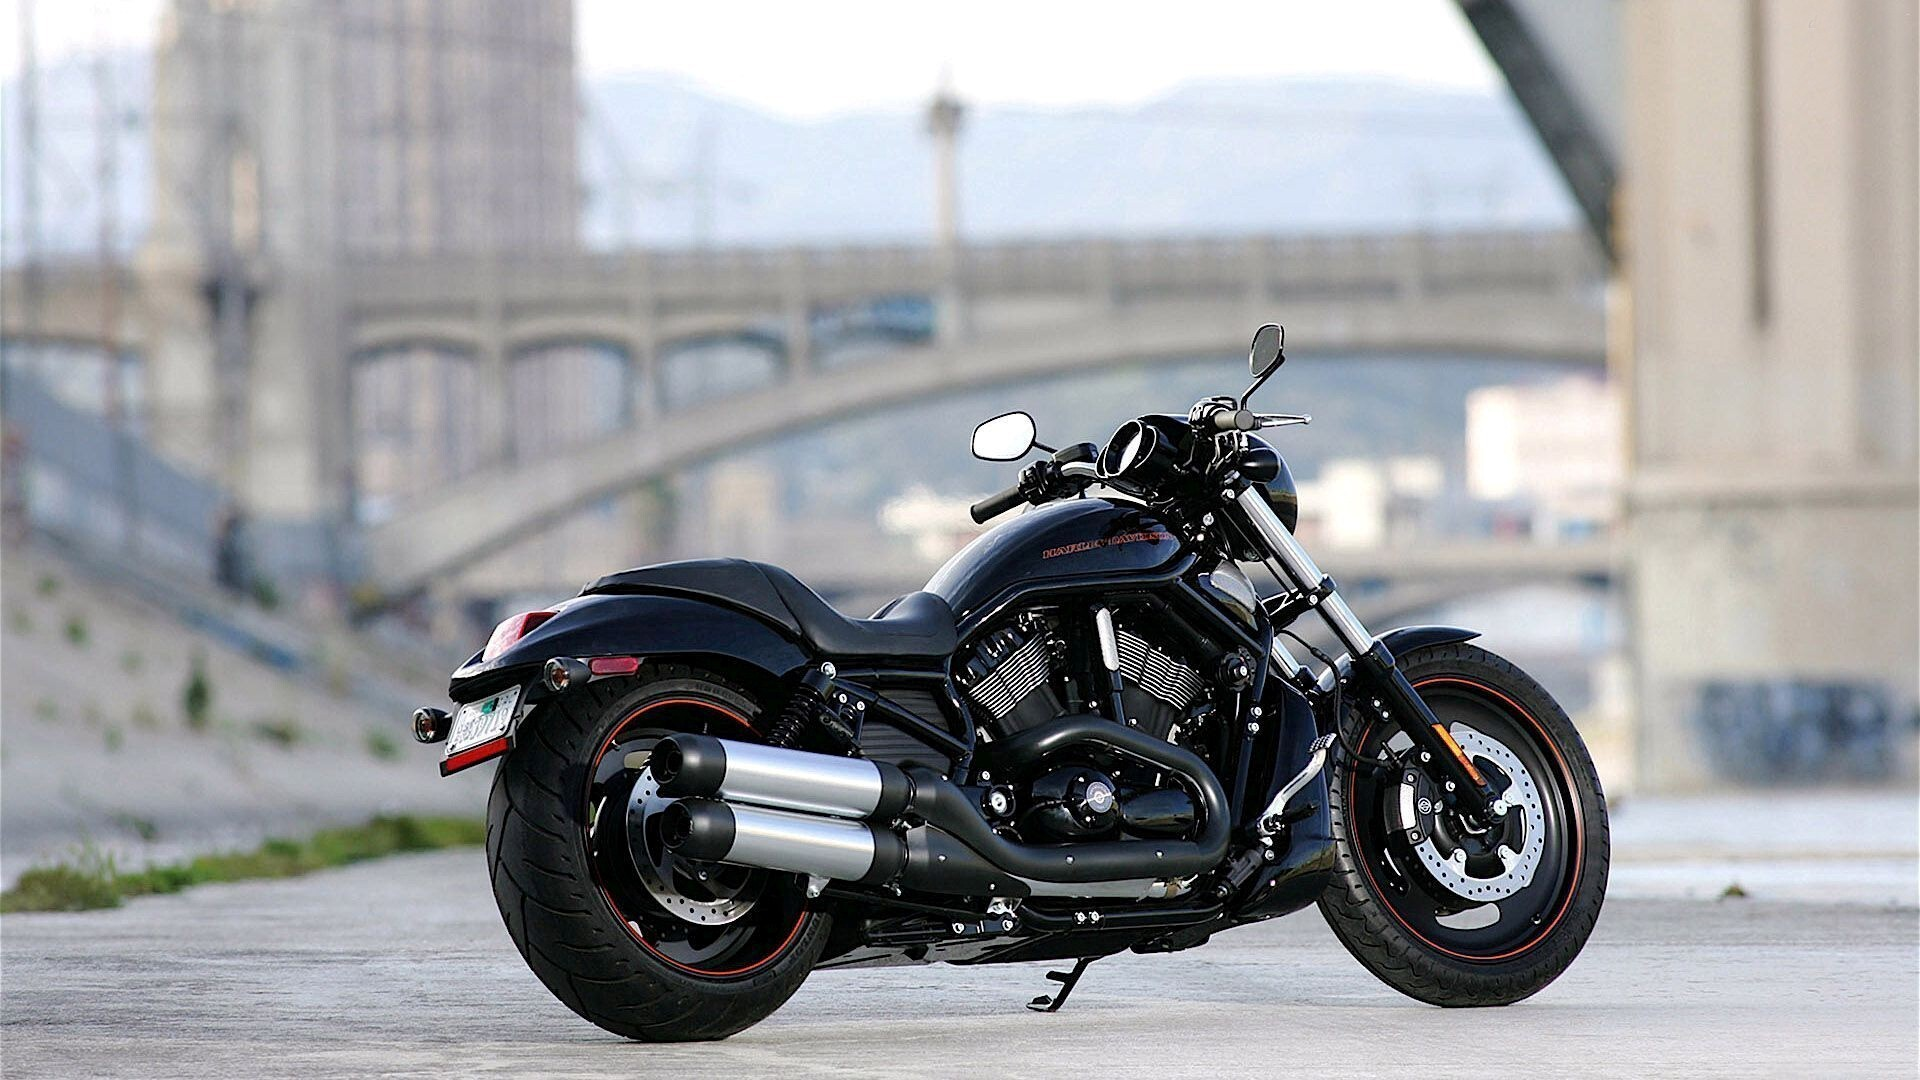 New harley davidson on road hd photo background hd wallpapers new harley davidson on road hd photo background voltagebd Image collections